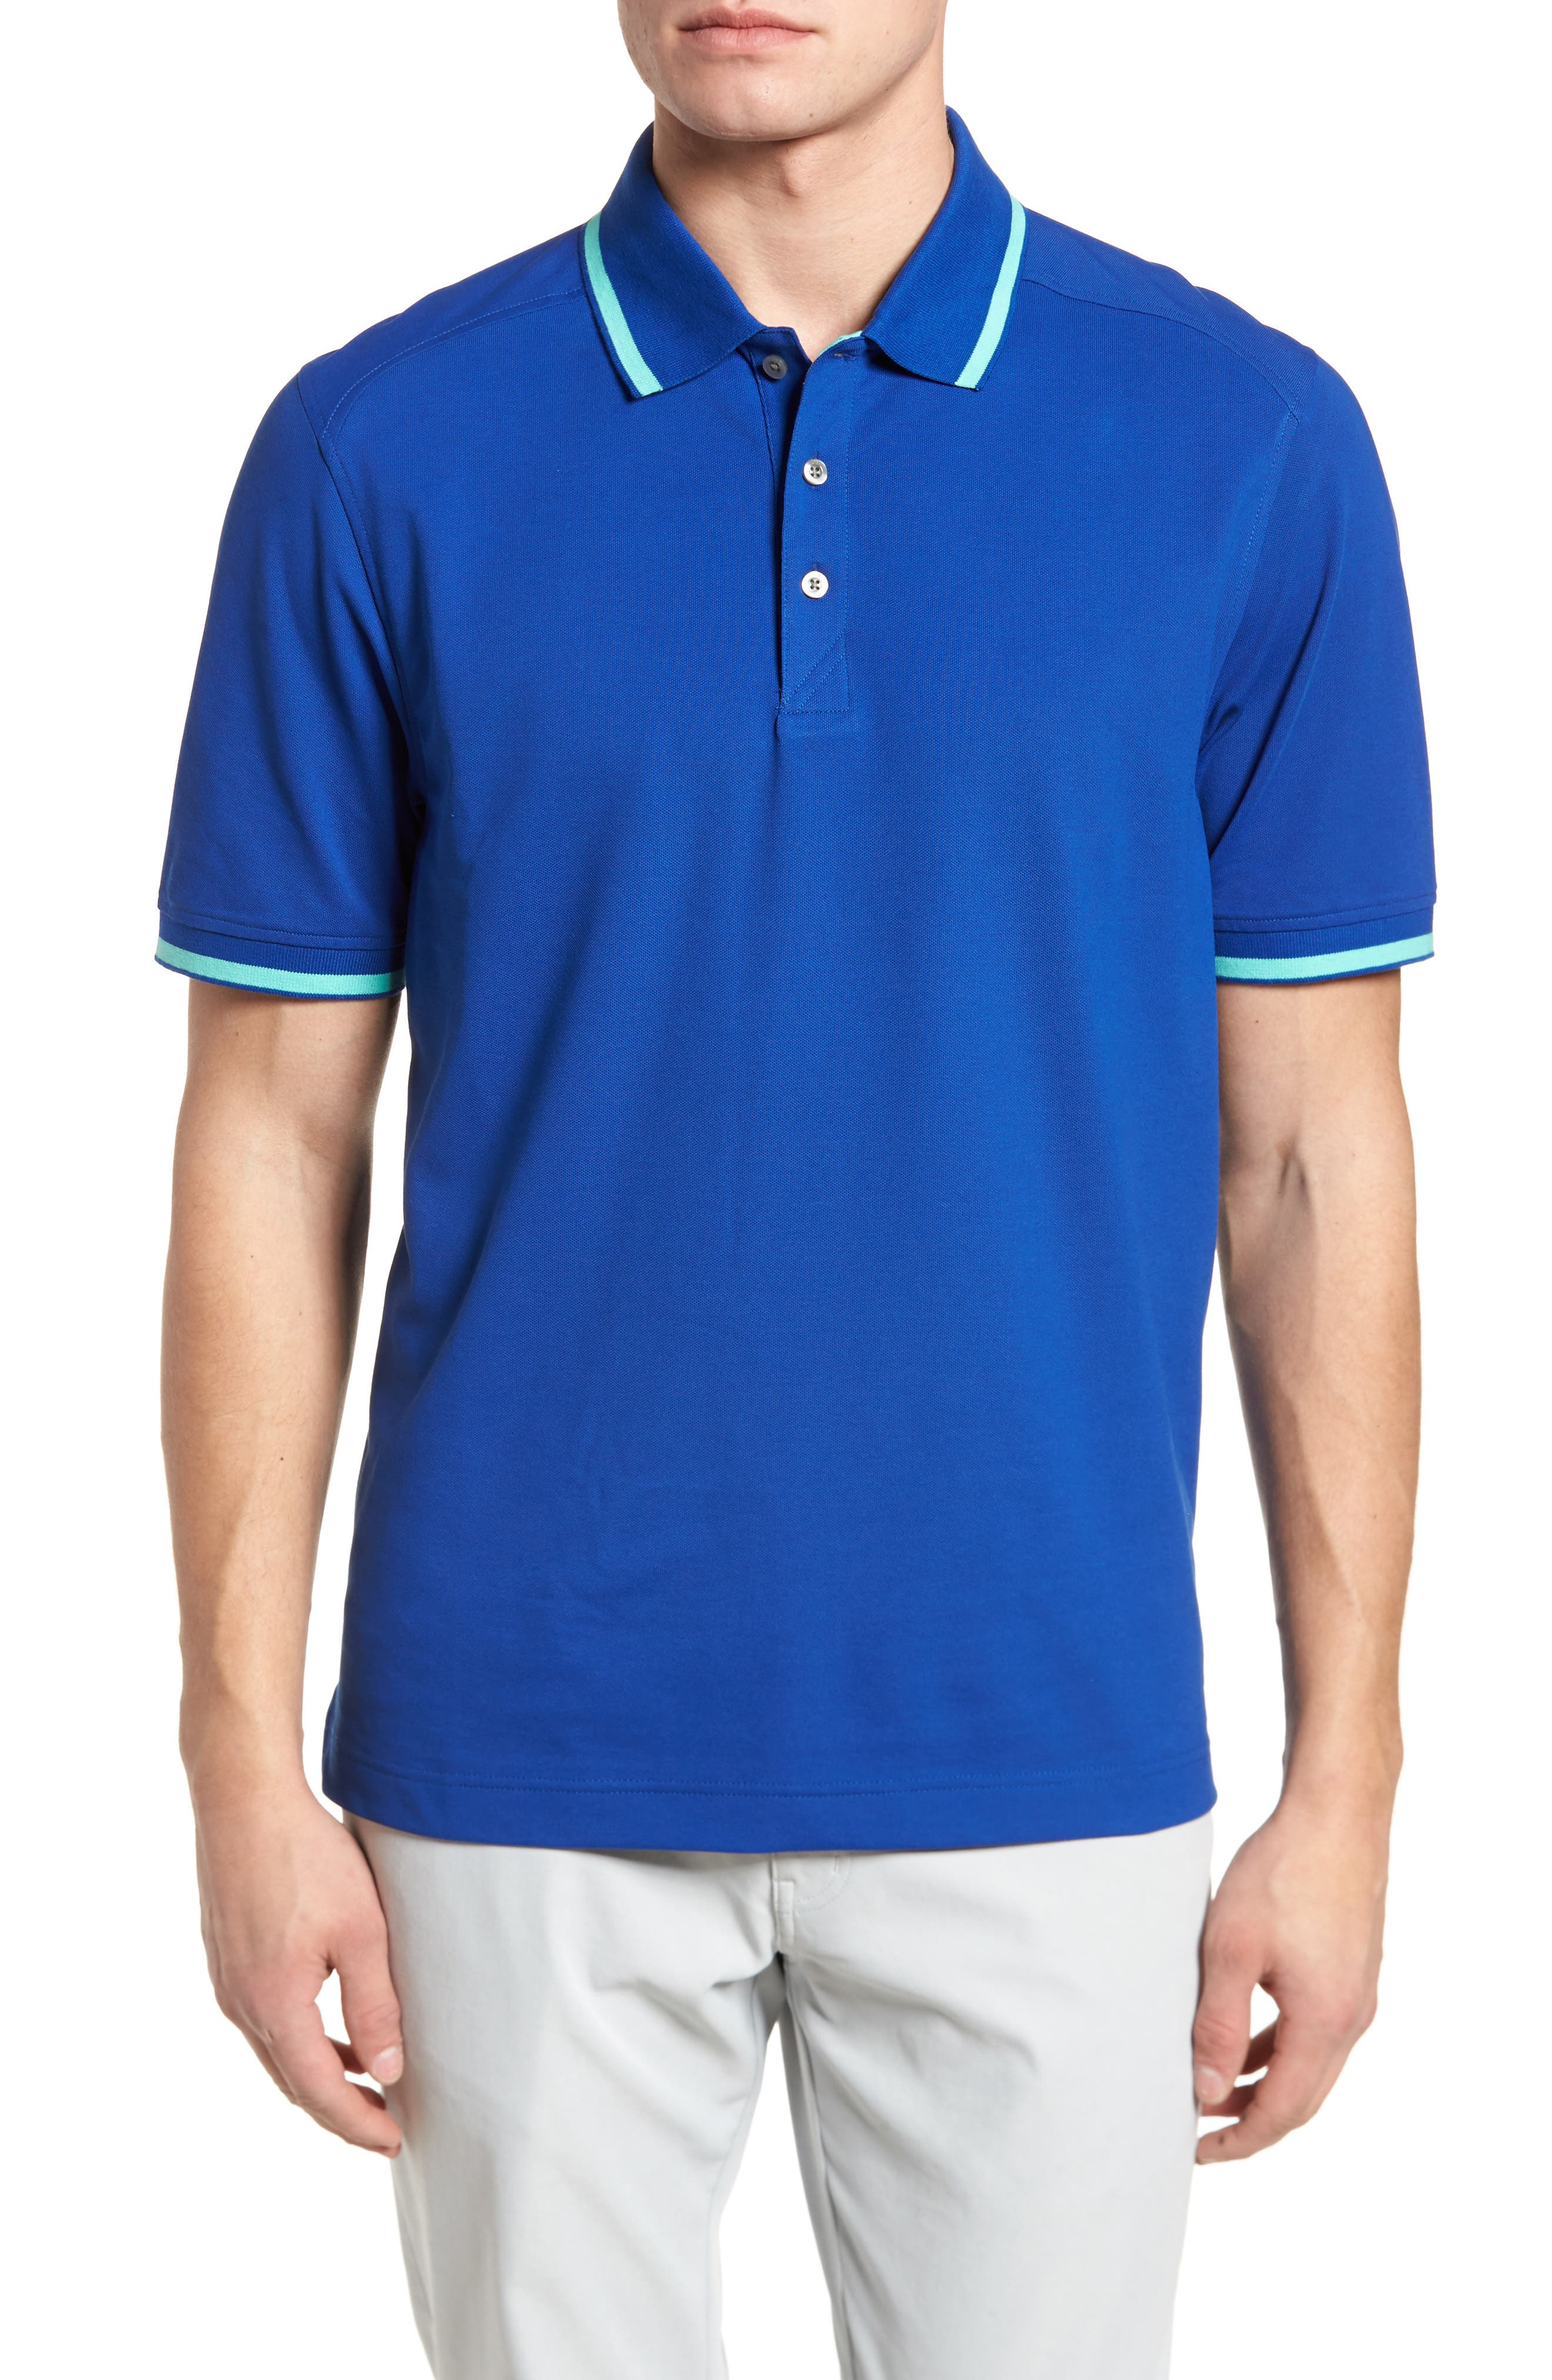 Cutter & Buck Tipped DryTec Polo